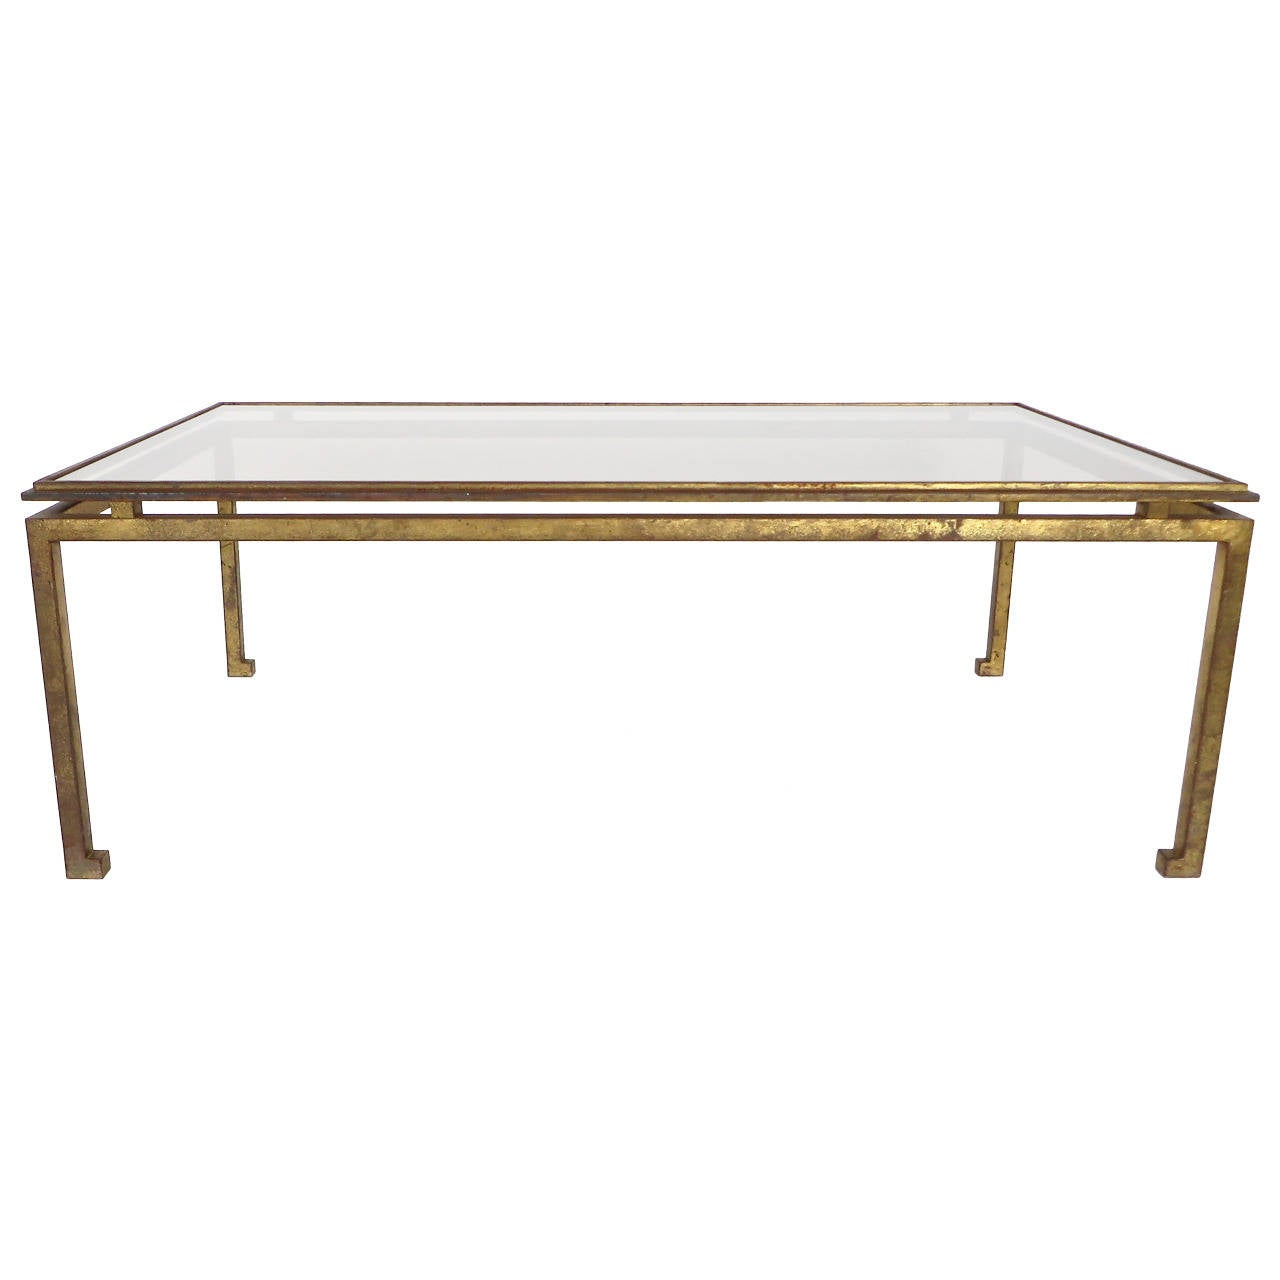 Maison Ramsay Superb Patina Gold Leaf Wrought Iron Rectangular Coffee Table At 1stdibs